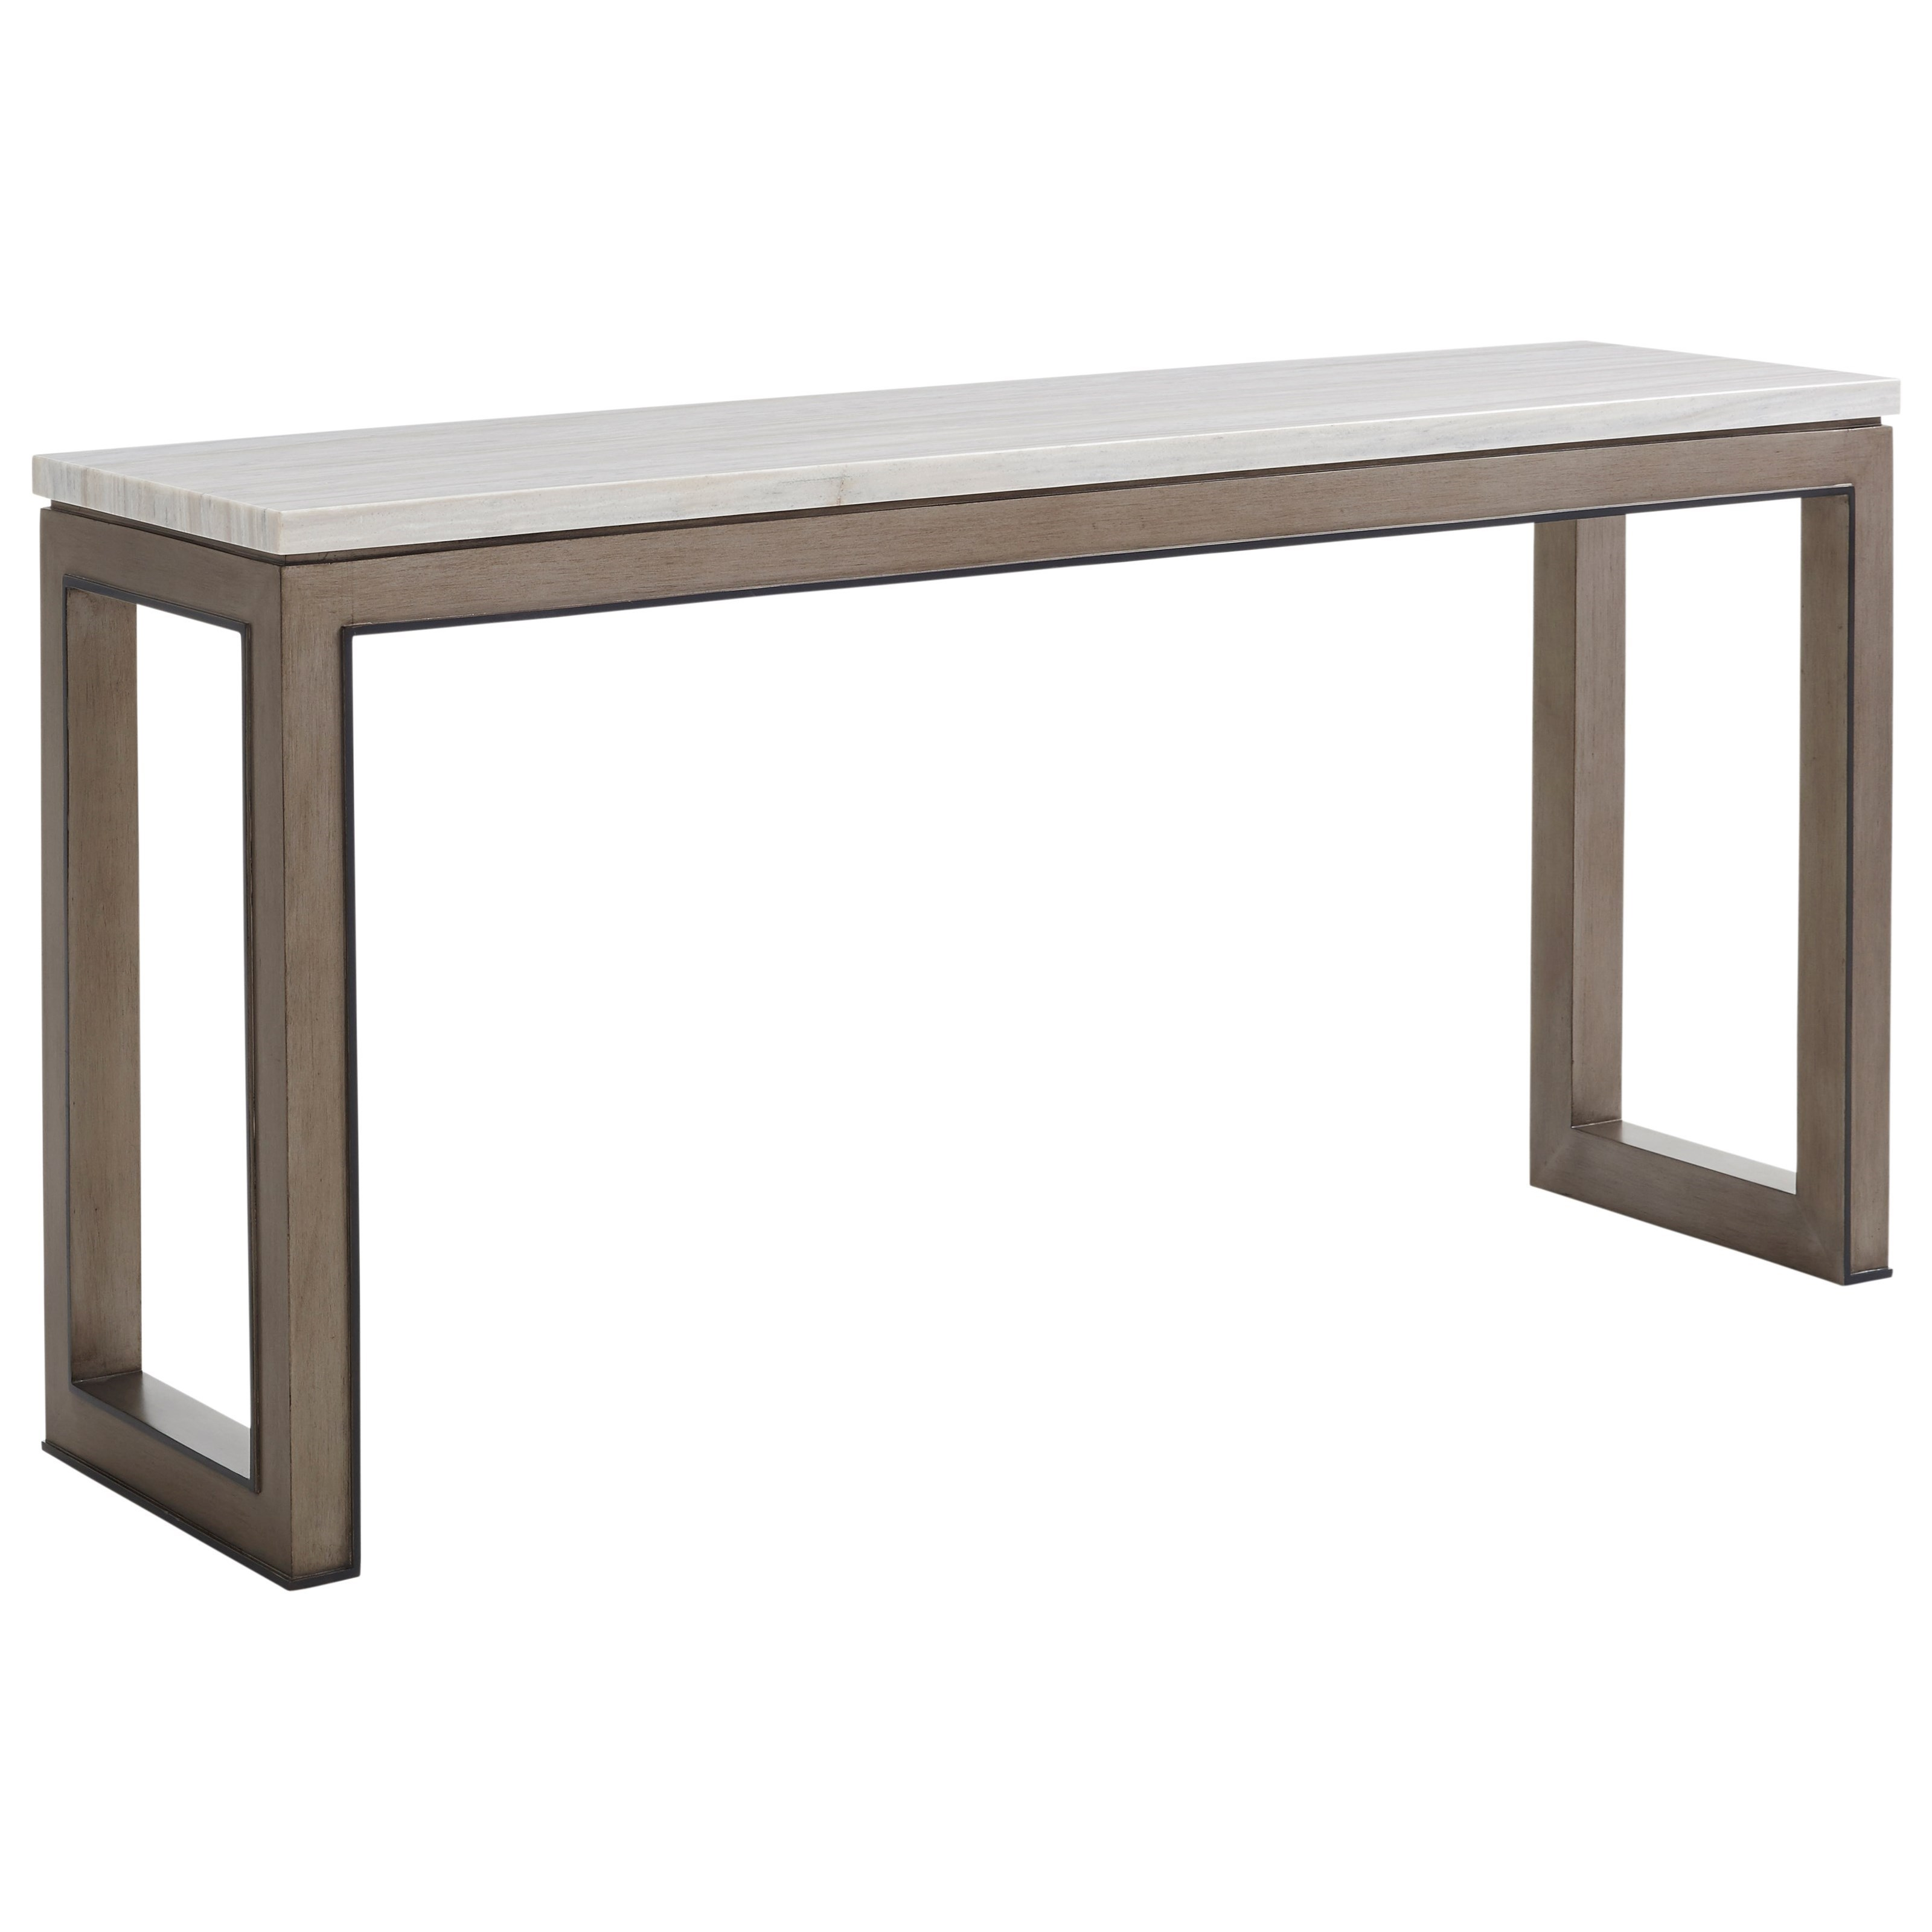 Lexington Ariana 732 966 Vernay Console Table With Marble